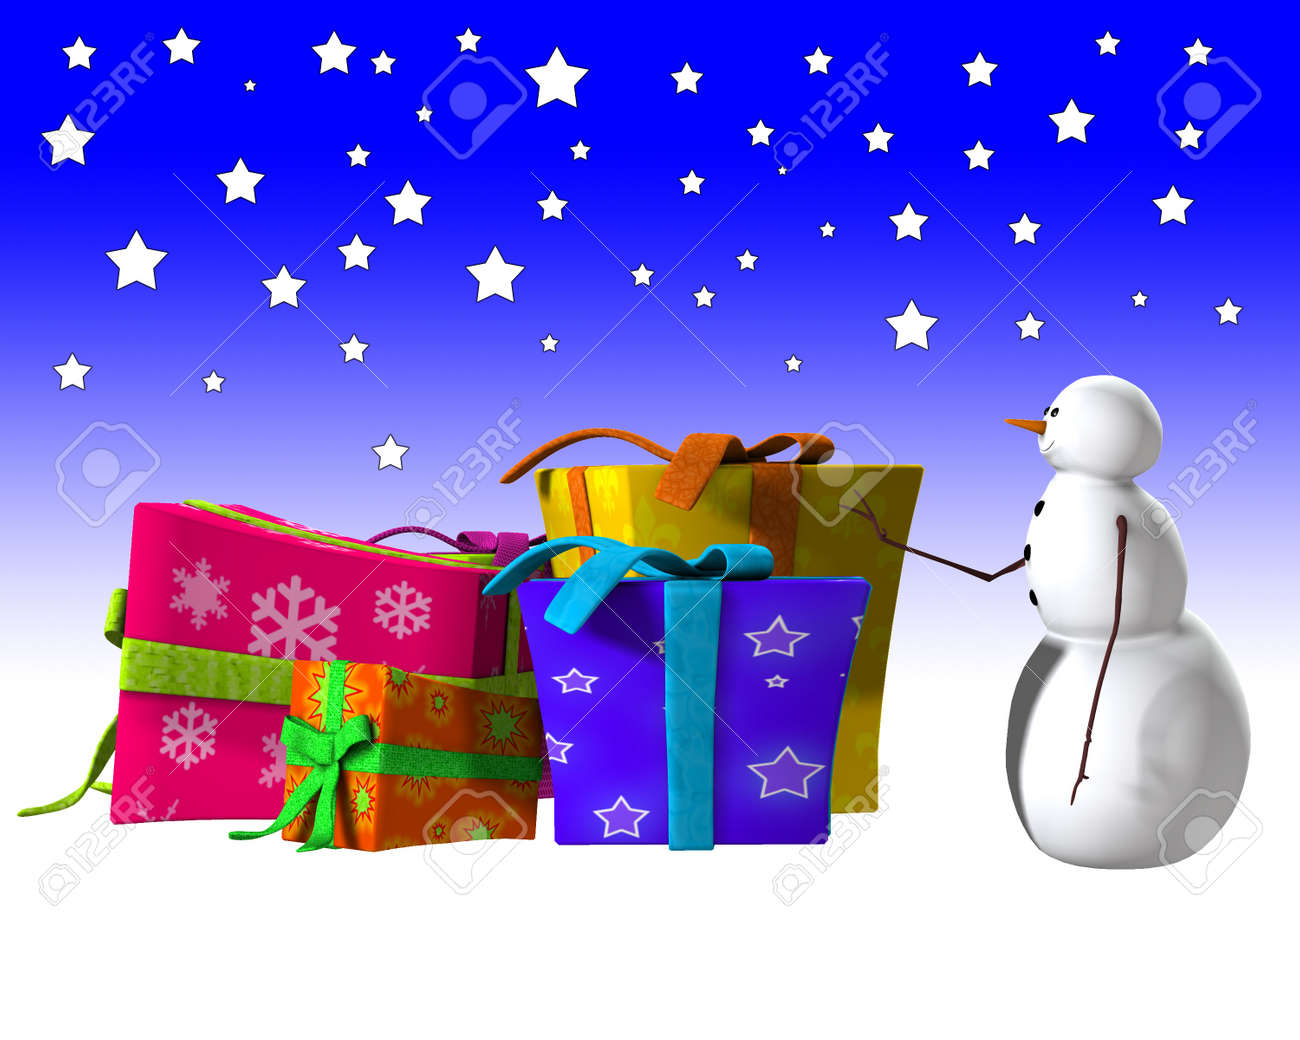 Snowman With Some Utterly Huge Christmas Presents